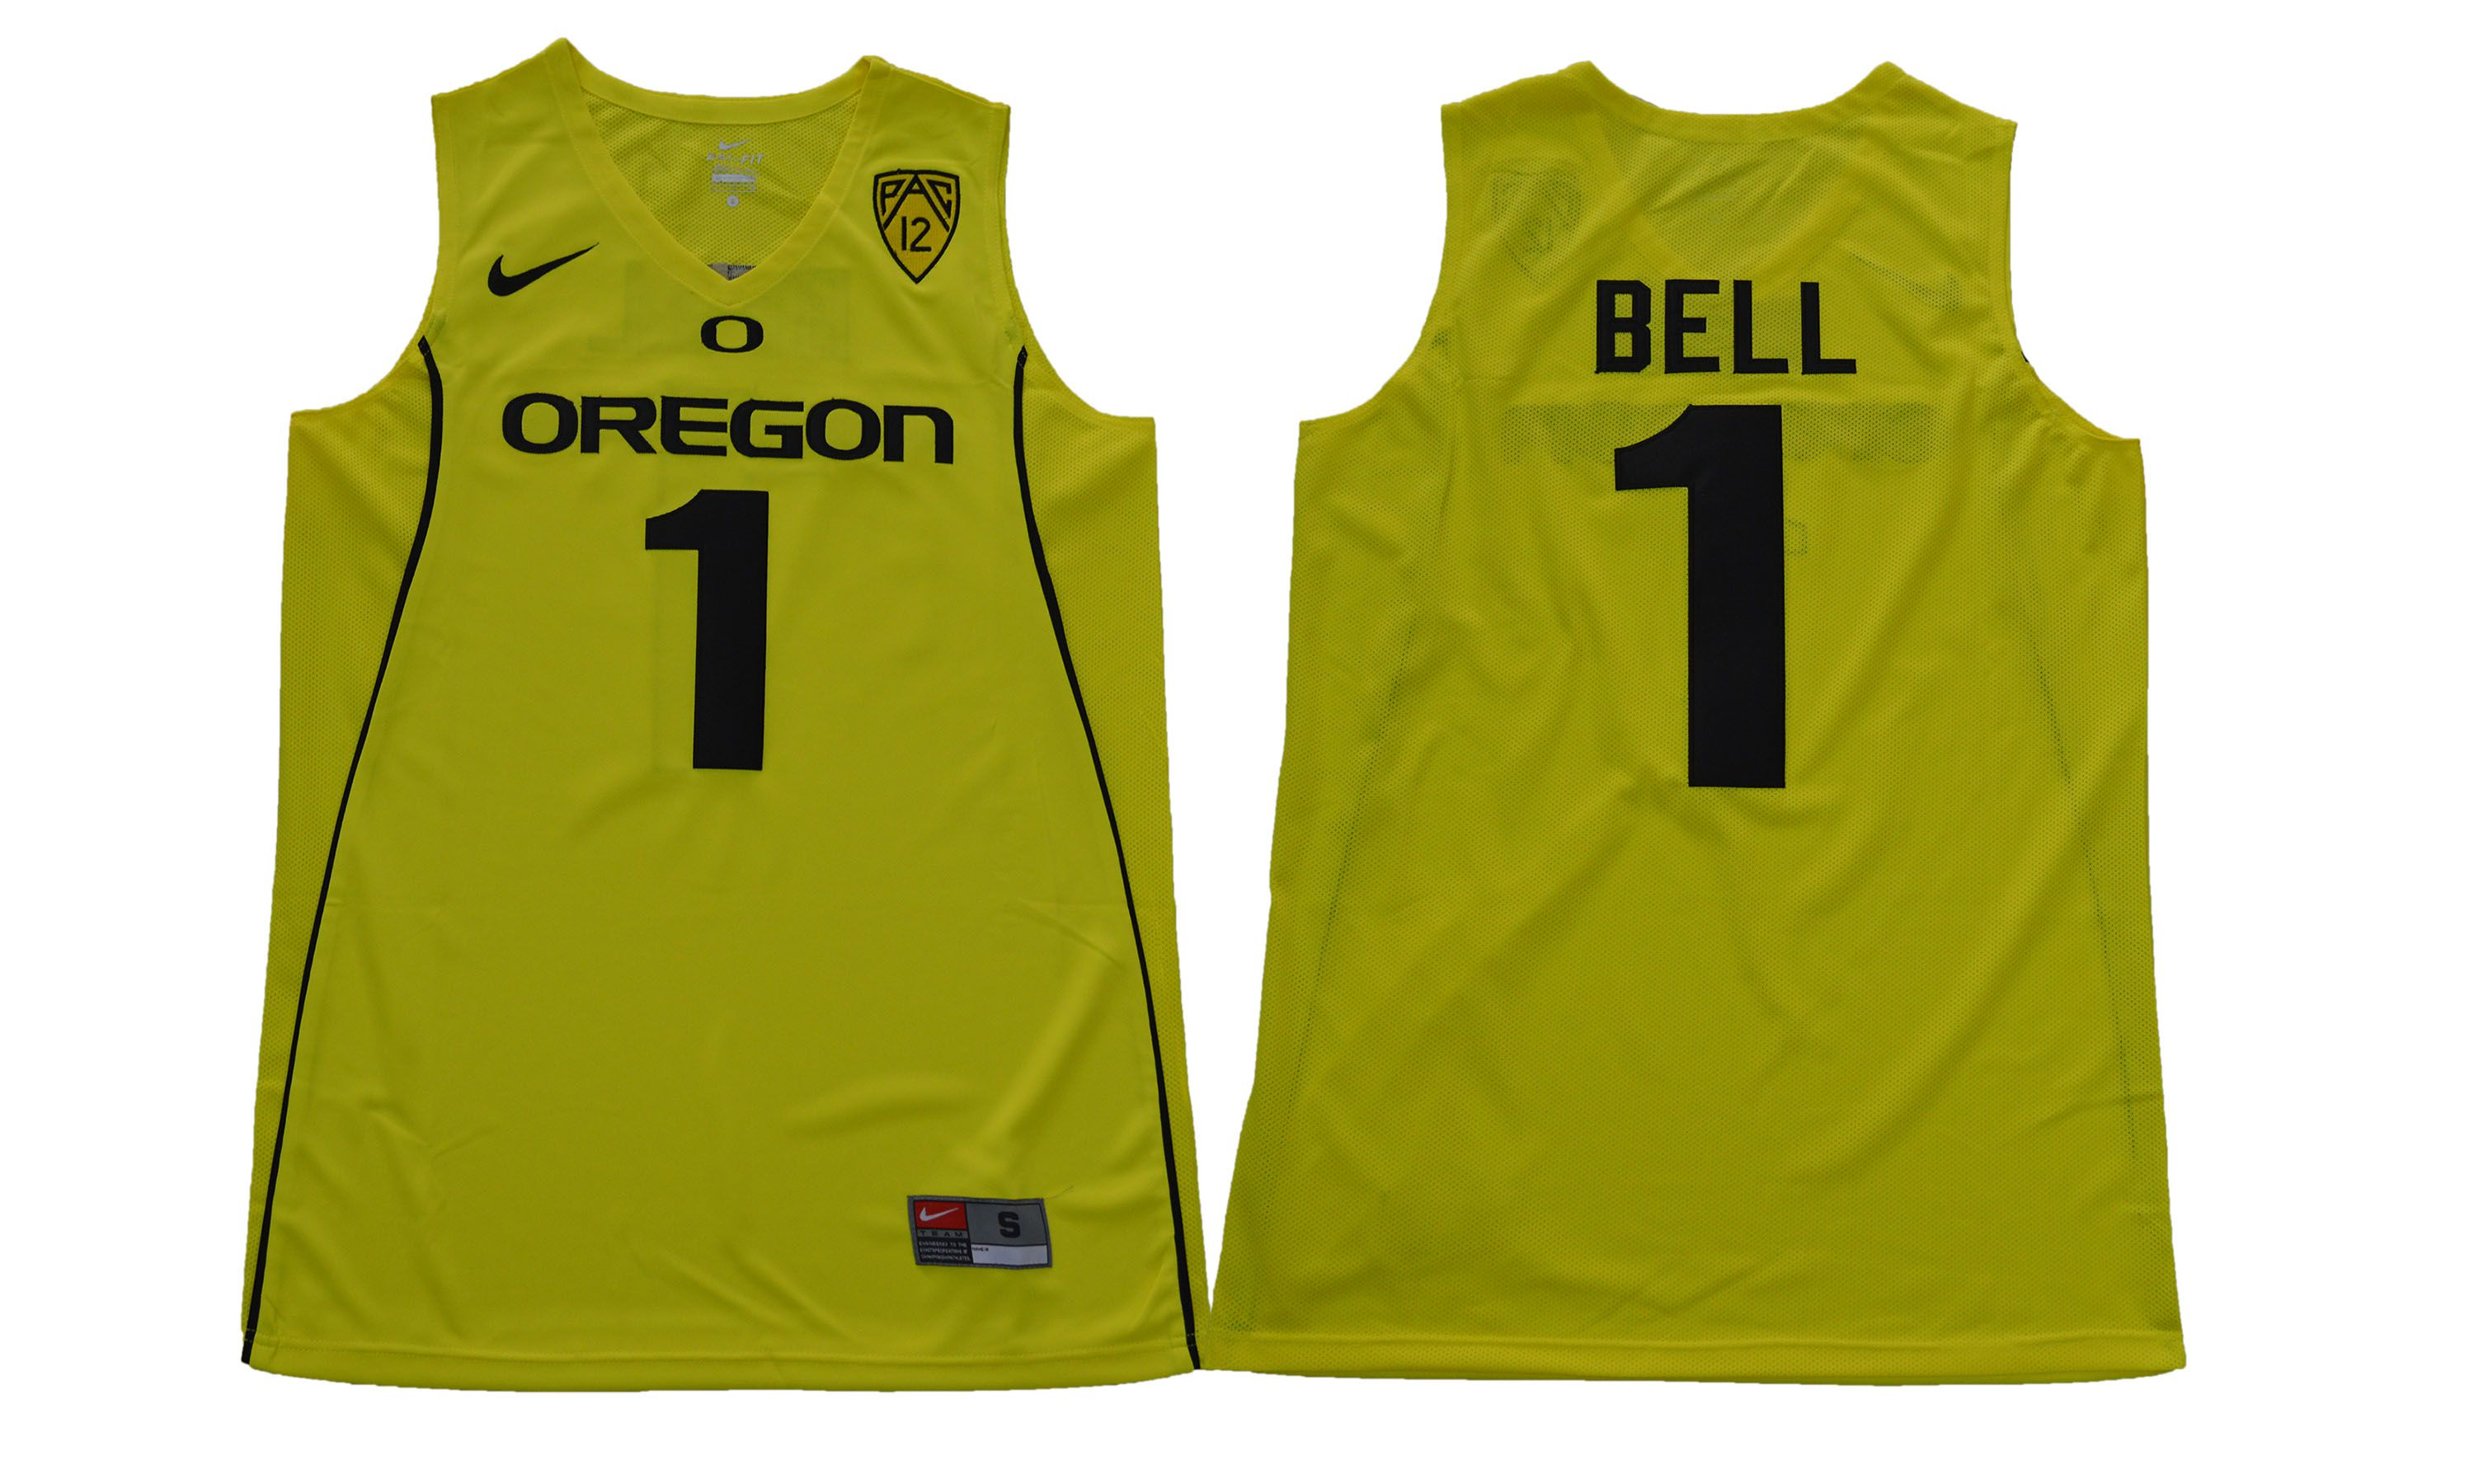 Men Oregon Ducks 1 Bell Yellow NCAA Jerseys